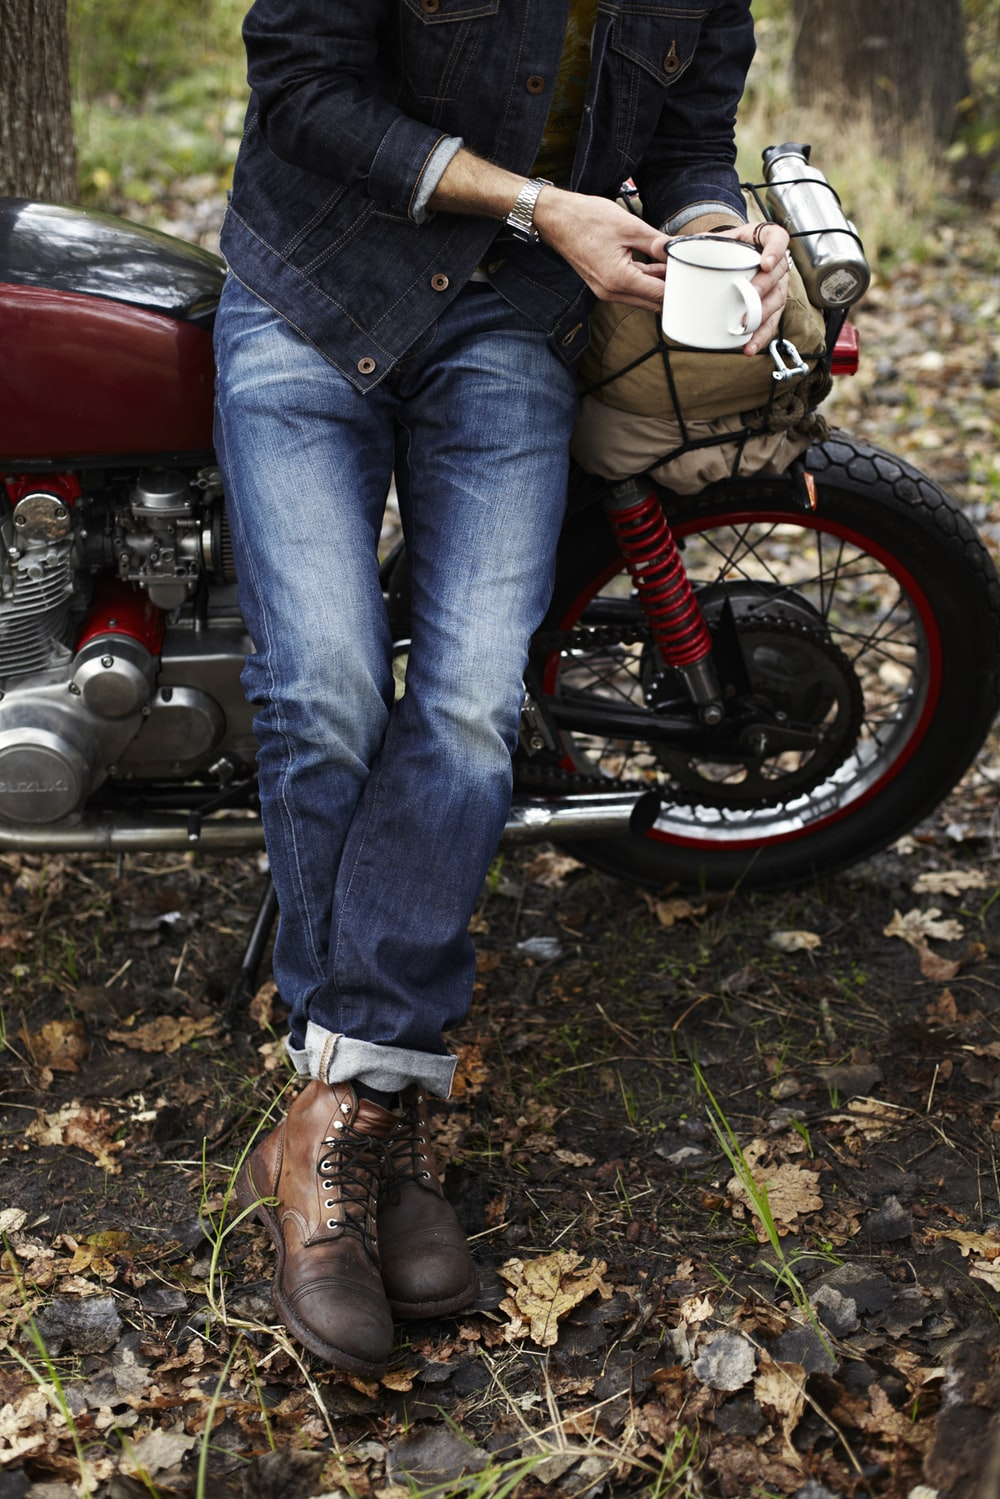 person in blue denim jeans and white sneakers sitting on red motorcycle